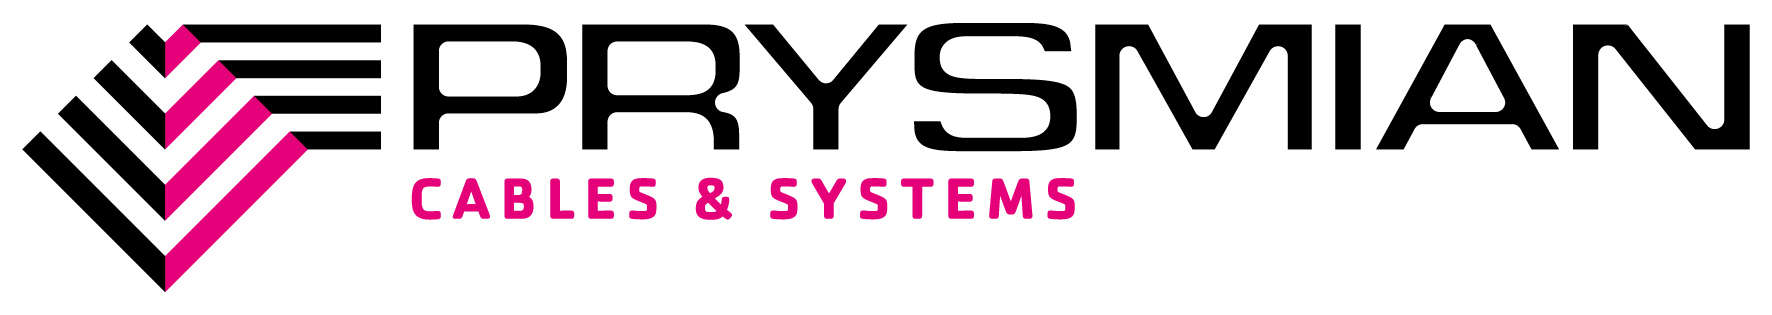 PRYSMIAN CABLE& SYSTEMS